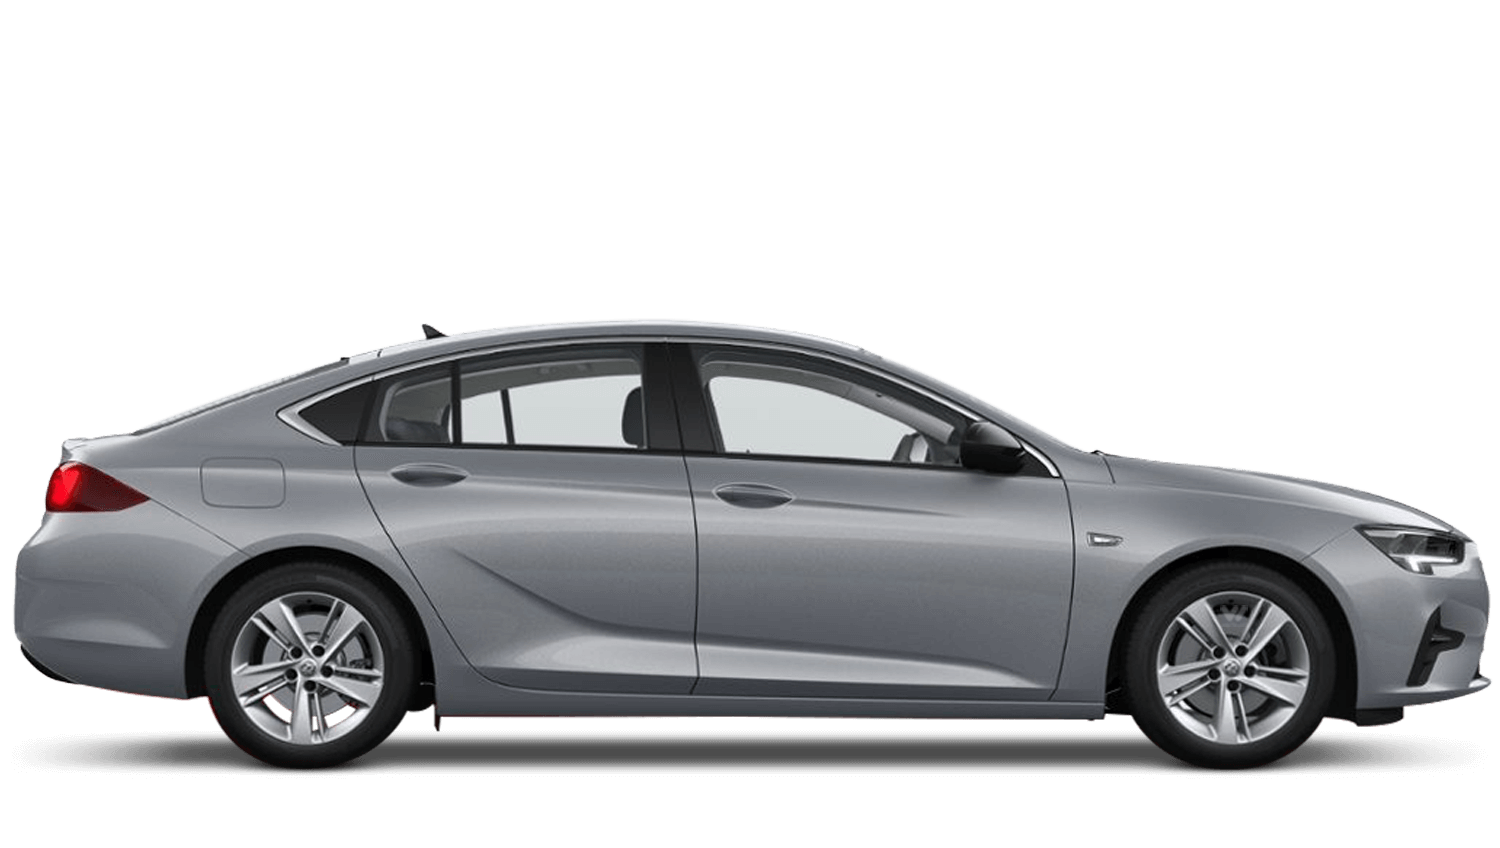 Satin Steel Grey (metallic) Vauxhall Insignia New